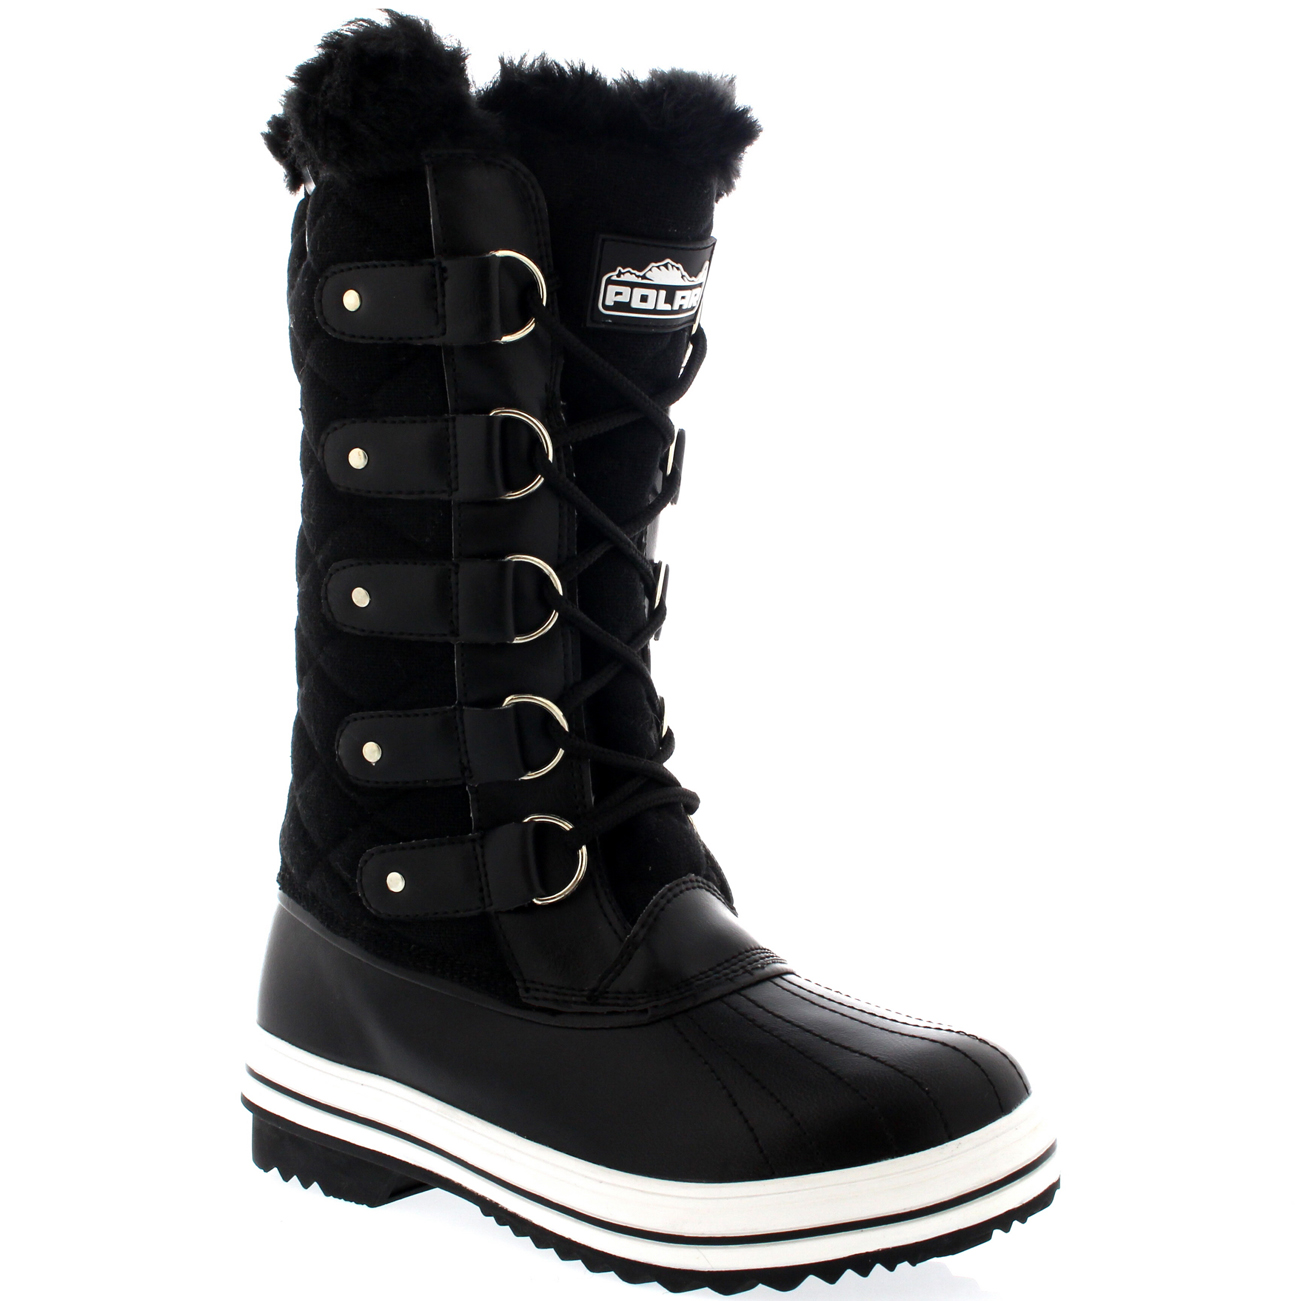 Lastest Polars Cold Weather Footwear Are A Must Have Essential Of The Winter Wardrobe Ideal Casual Outdoor Footwear For Those Cold Winter Days And Suitable For Those Participating Winter Activities This Mid Calf Boot Has A Plain Upper, Lace Up